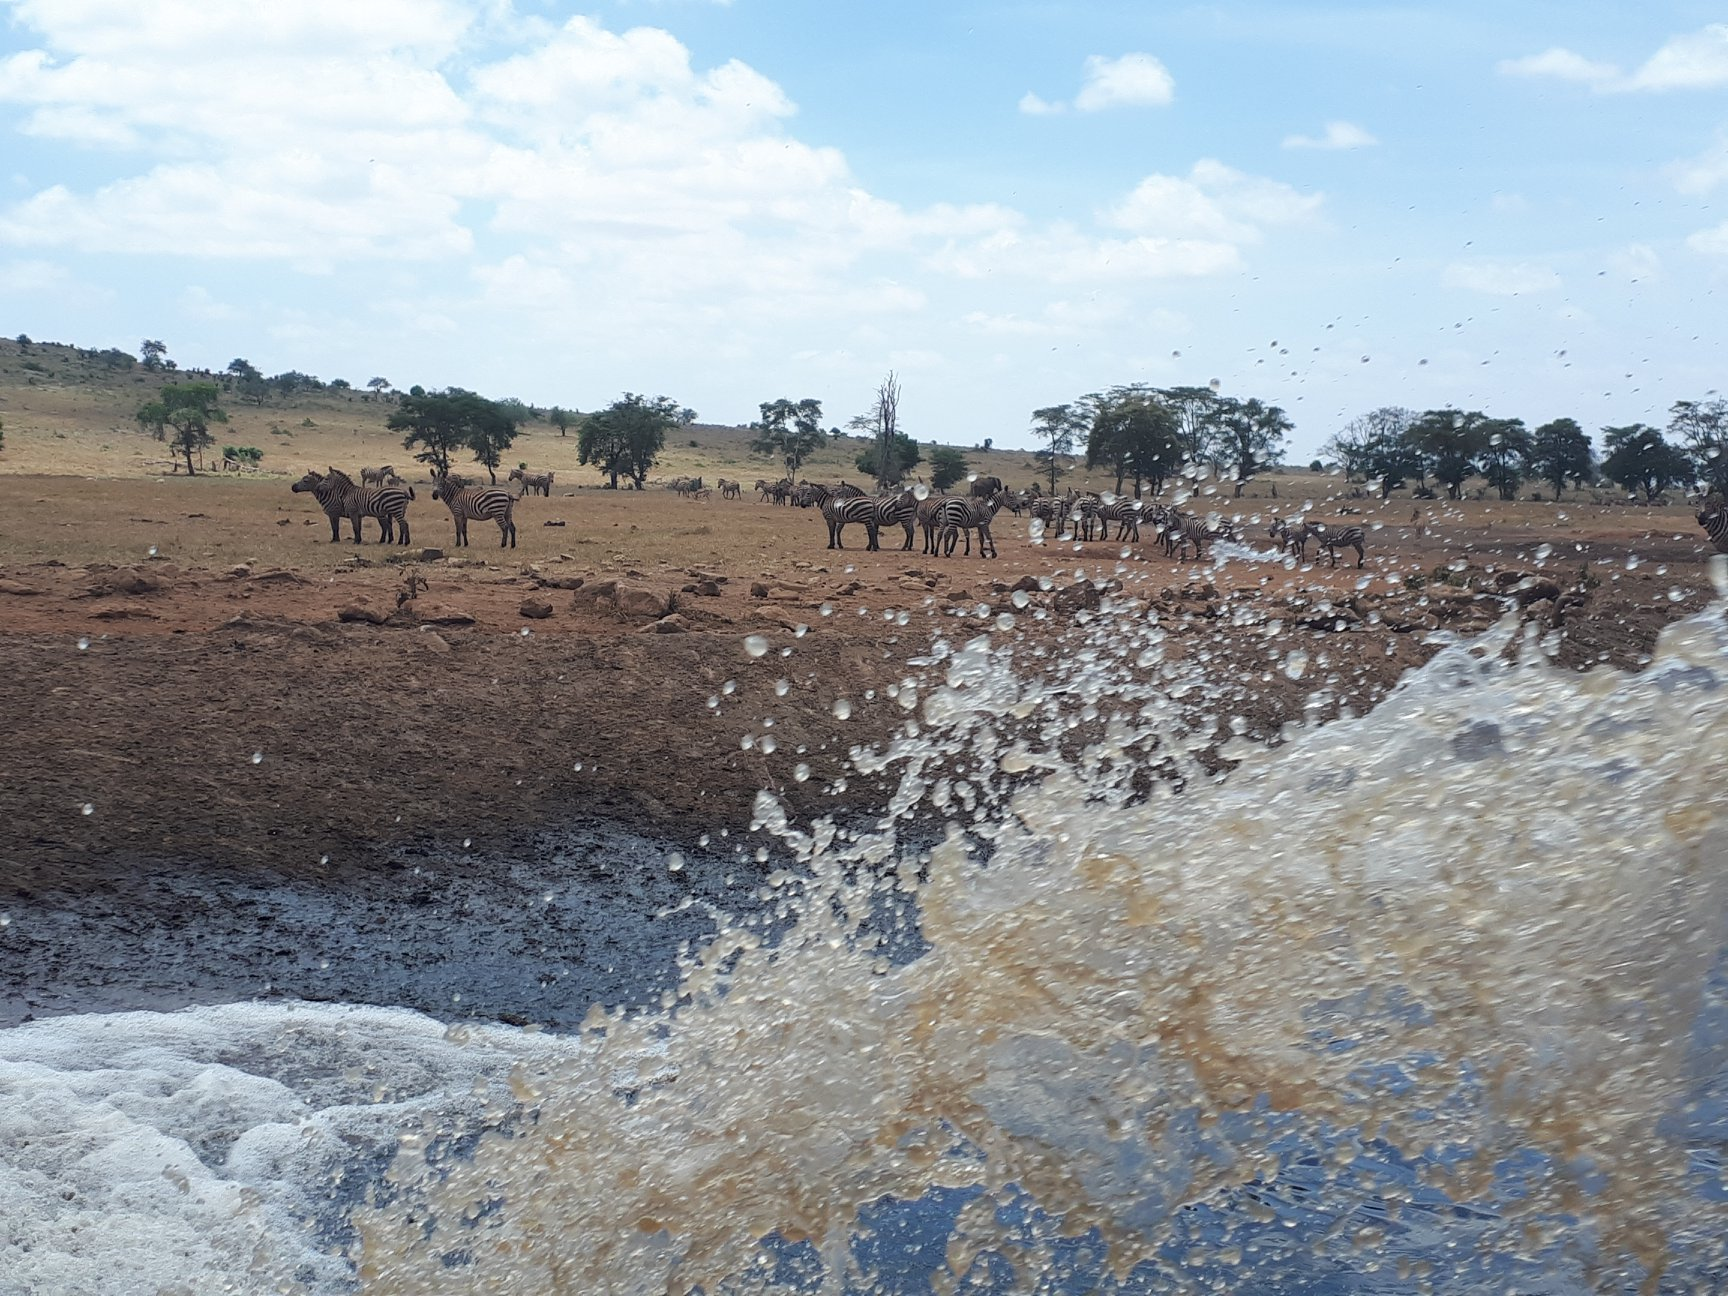 Der Farmer bringt Wasser in den Tsavo West National Park in Kenia. Bildnachweis: Patrick Killonzo Mwalua